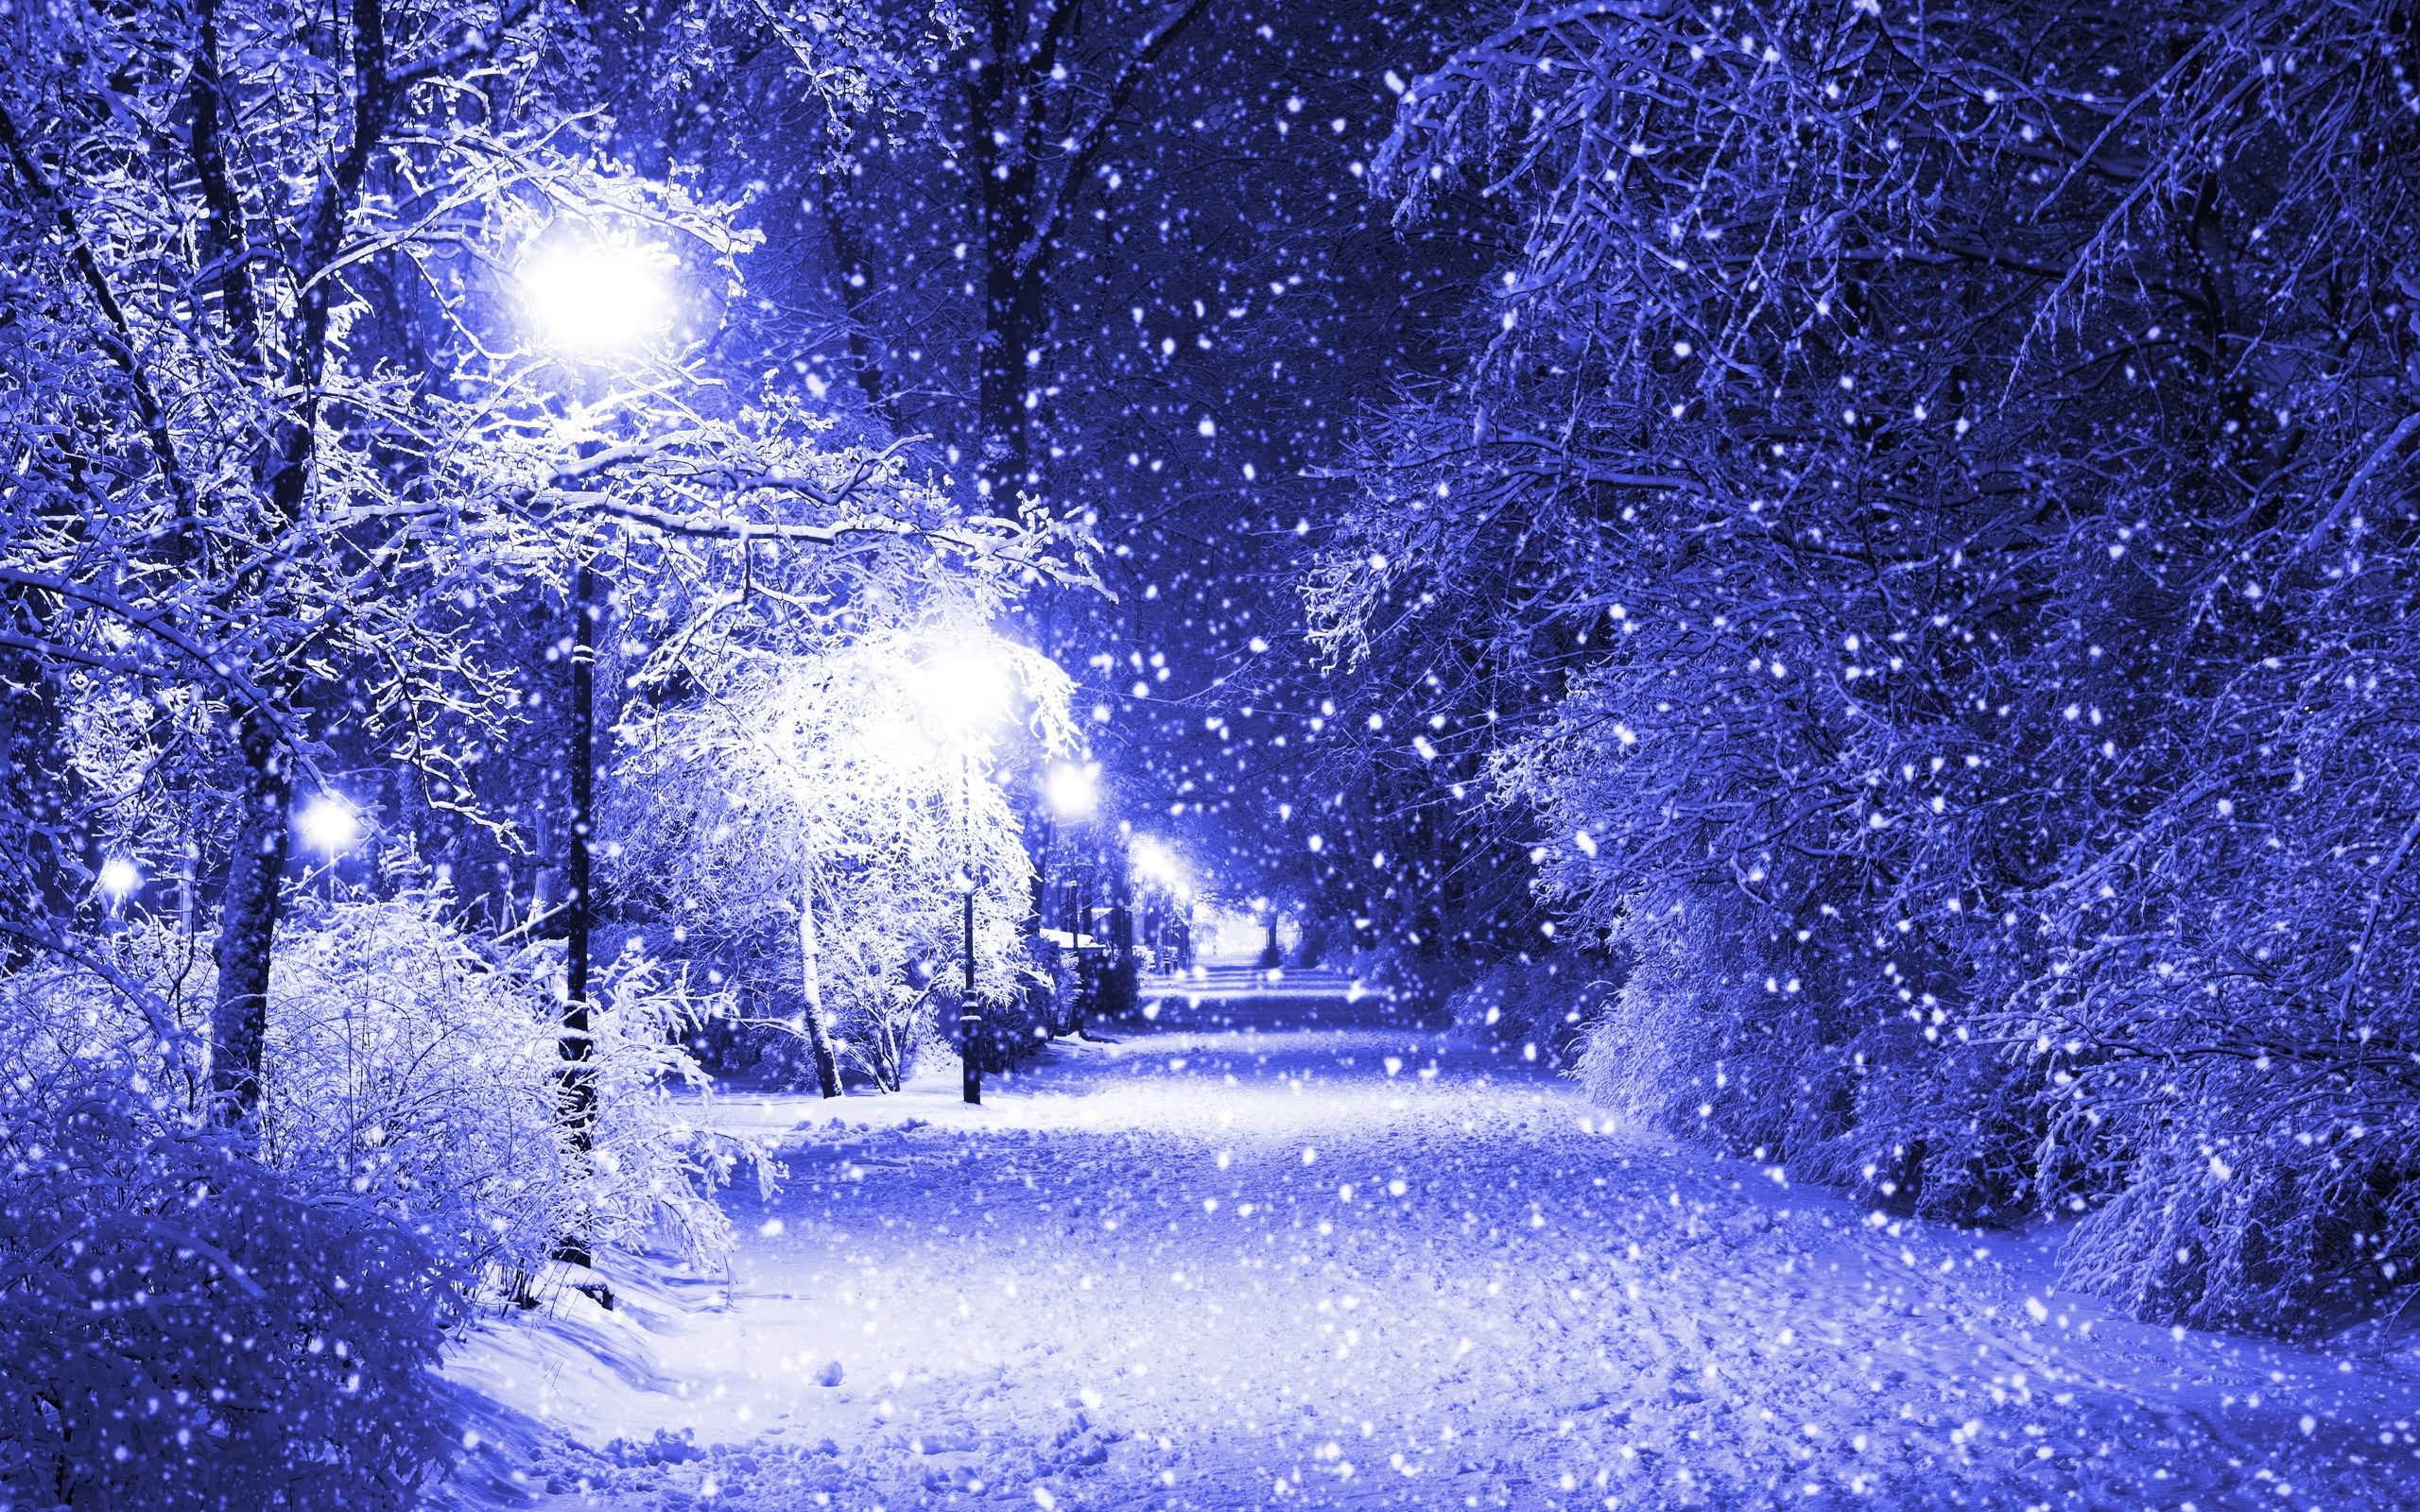 Animated Snow Falling Wallpaper - WallpaperSafari